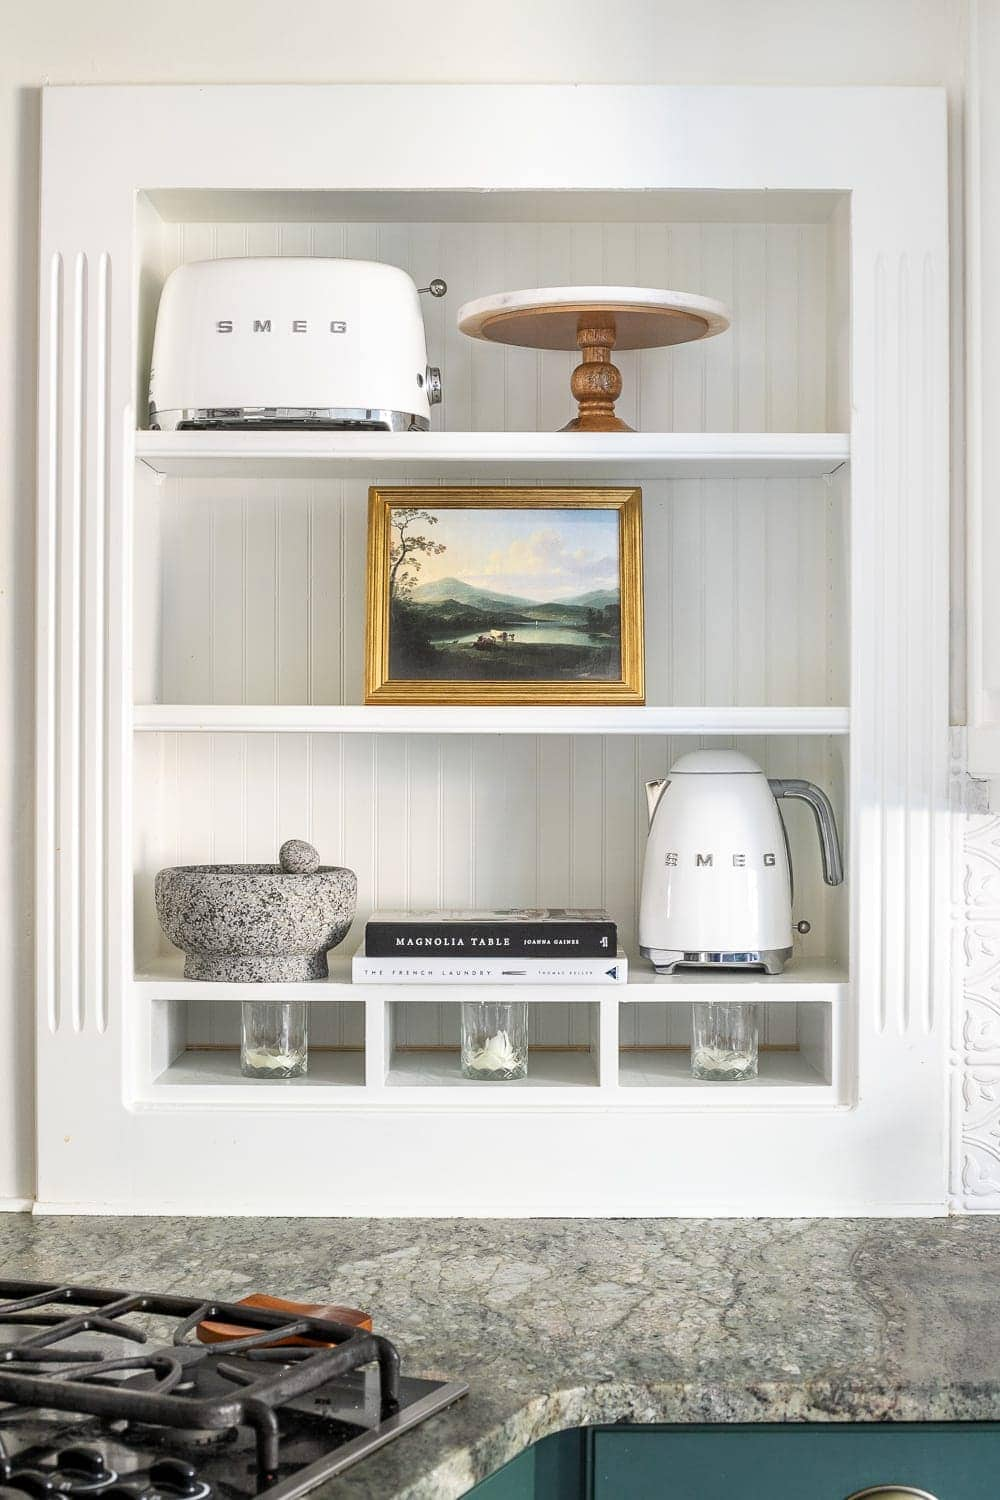 How to Decorate Shelves | 8 tips for decorating shelves to make them look perfectly styled and balanced every single time to make a statement in any room.